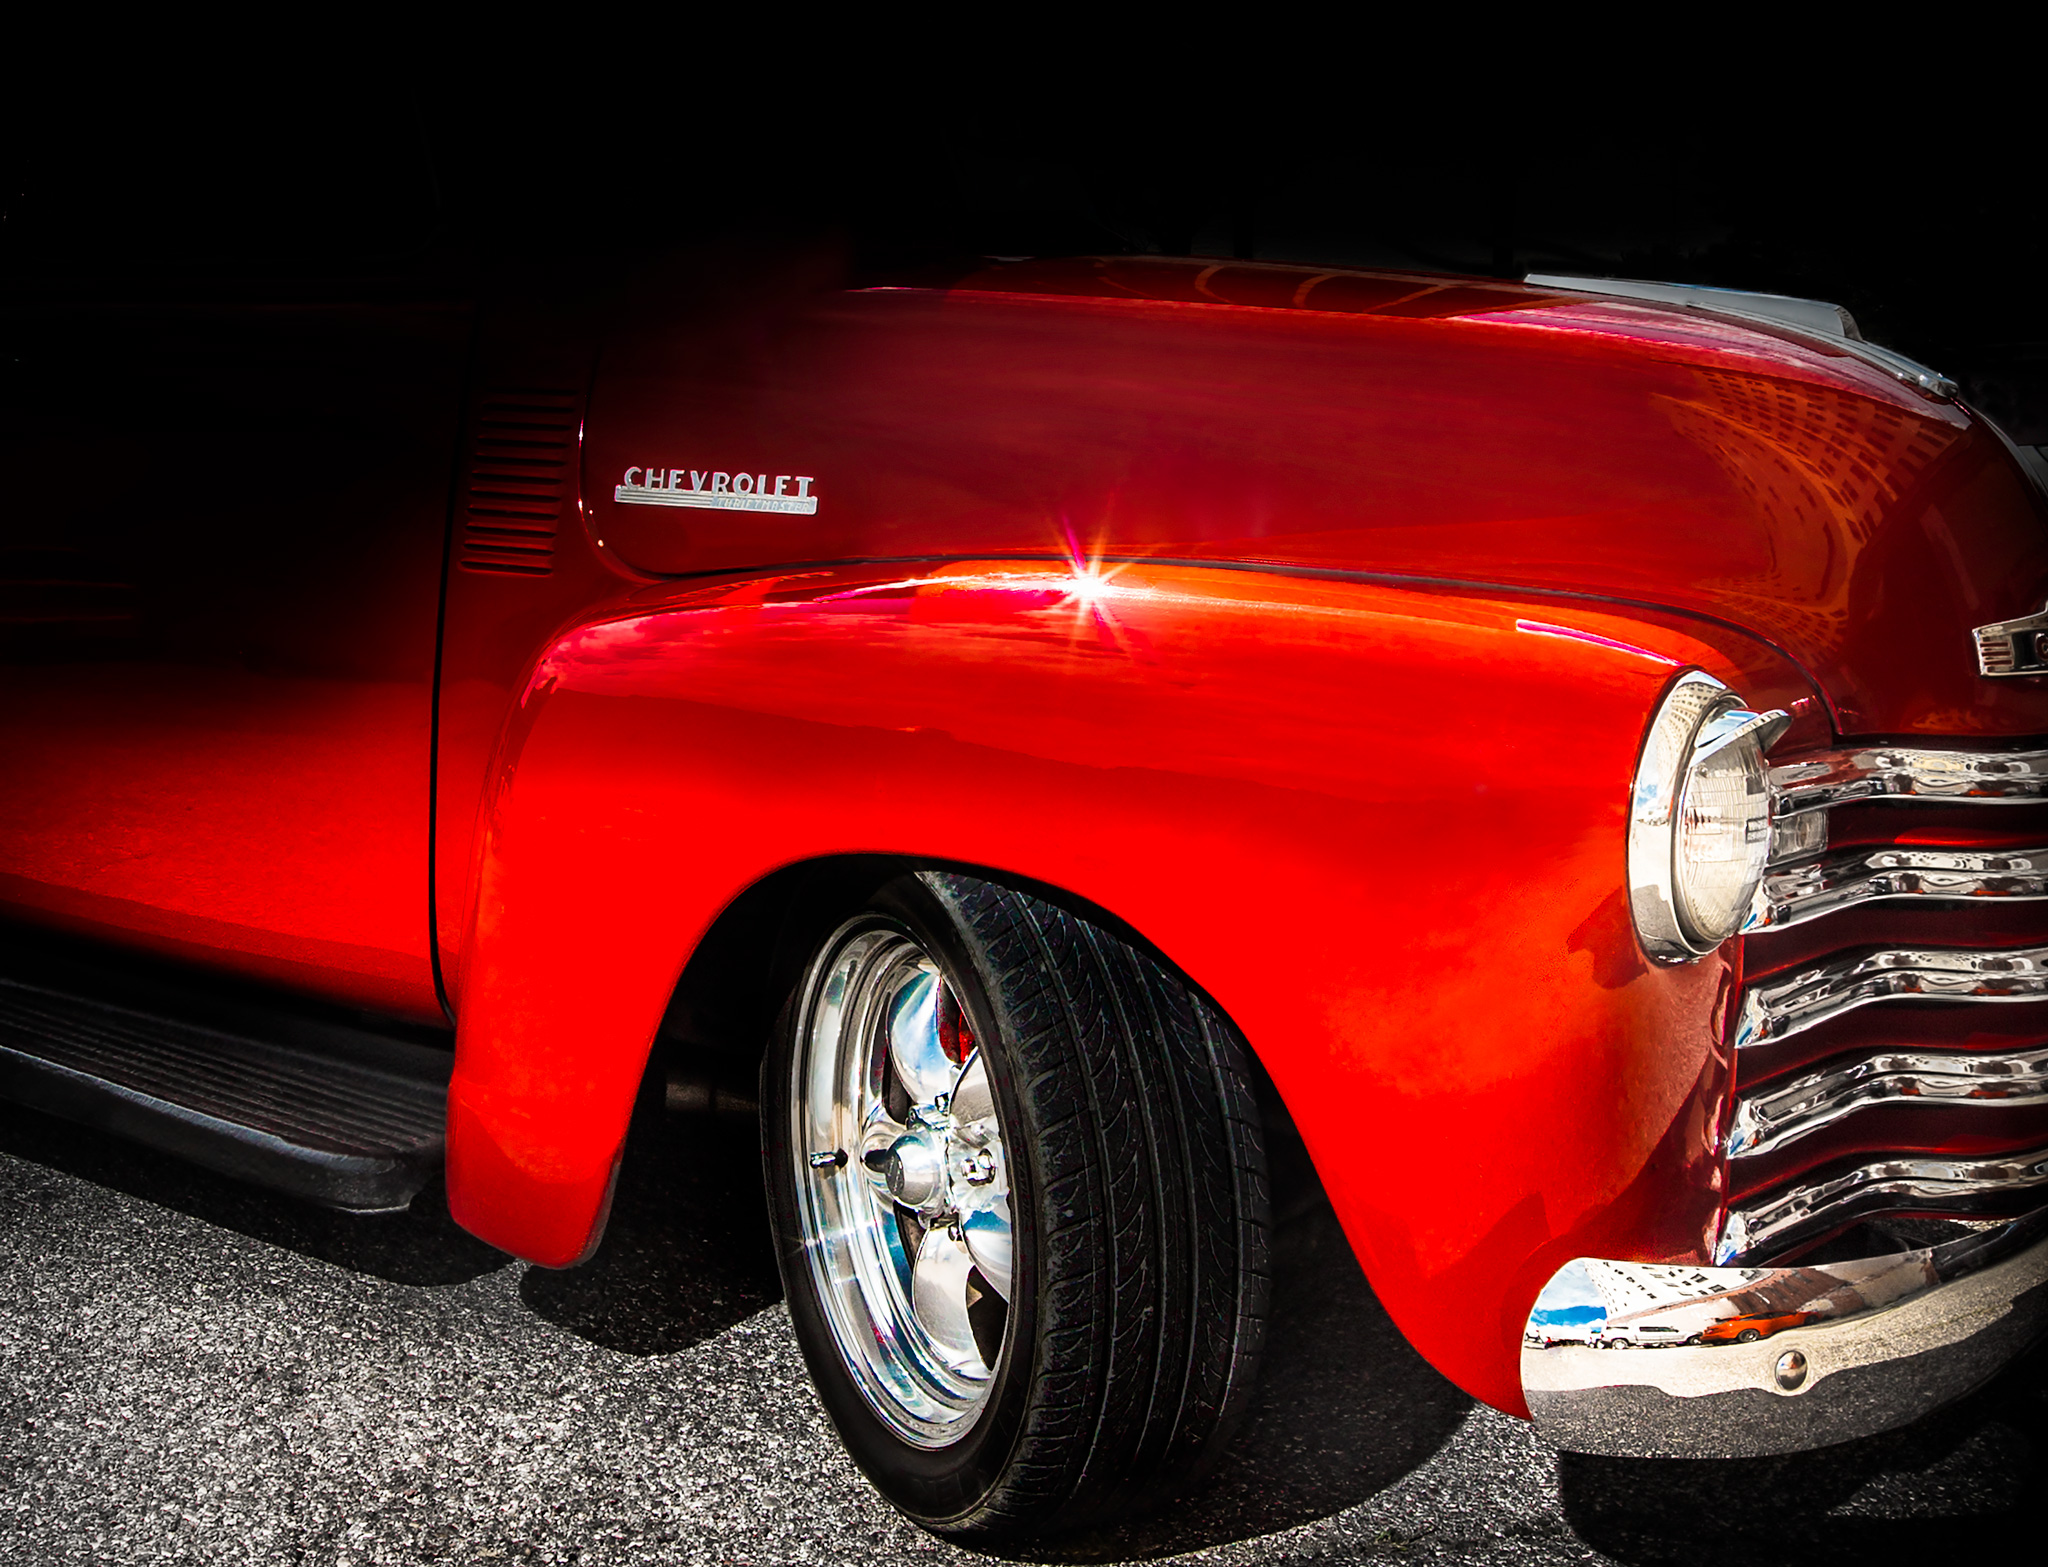 A very red 52 Chevy truck. Who knew that a 60+ year old pickup truck fender could be so enticing you'd want to lick it?